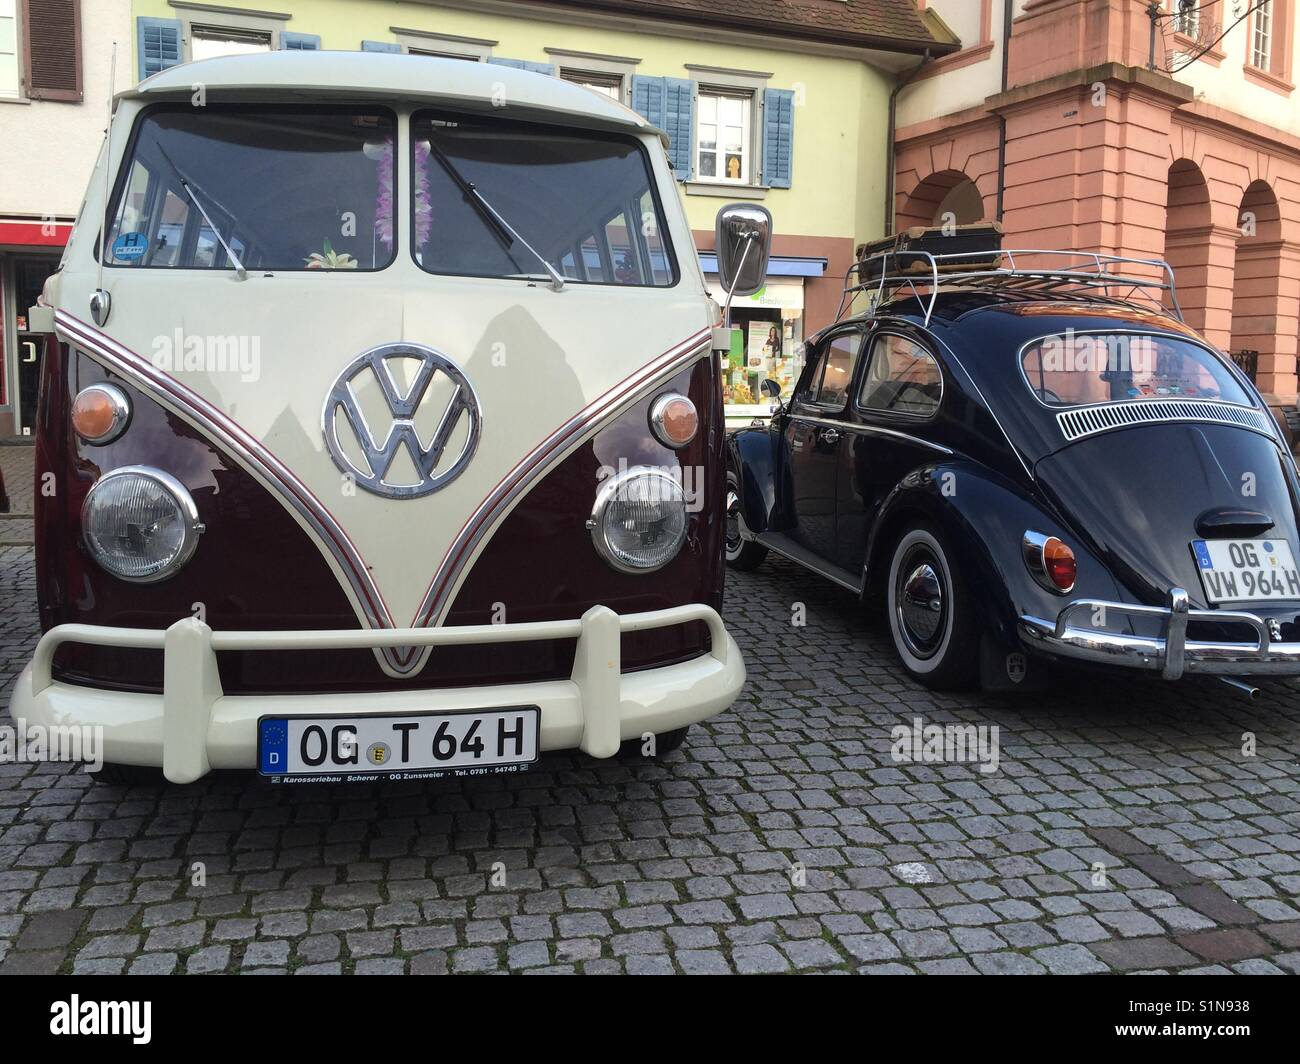 VW bus and VW Beatle Oldtimers in Schwarzwald Germany on cobblestones - Stock Image